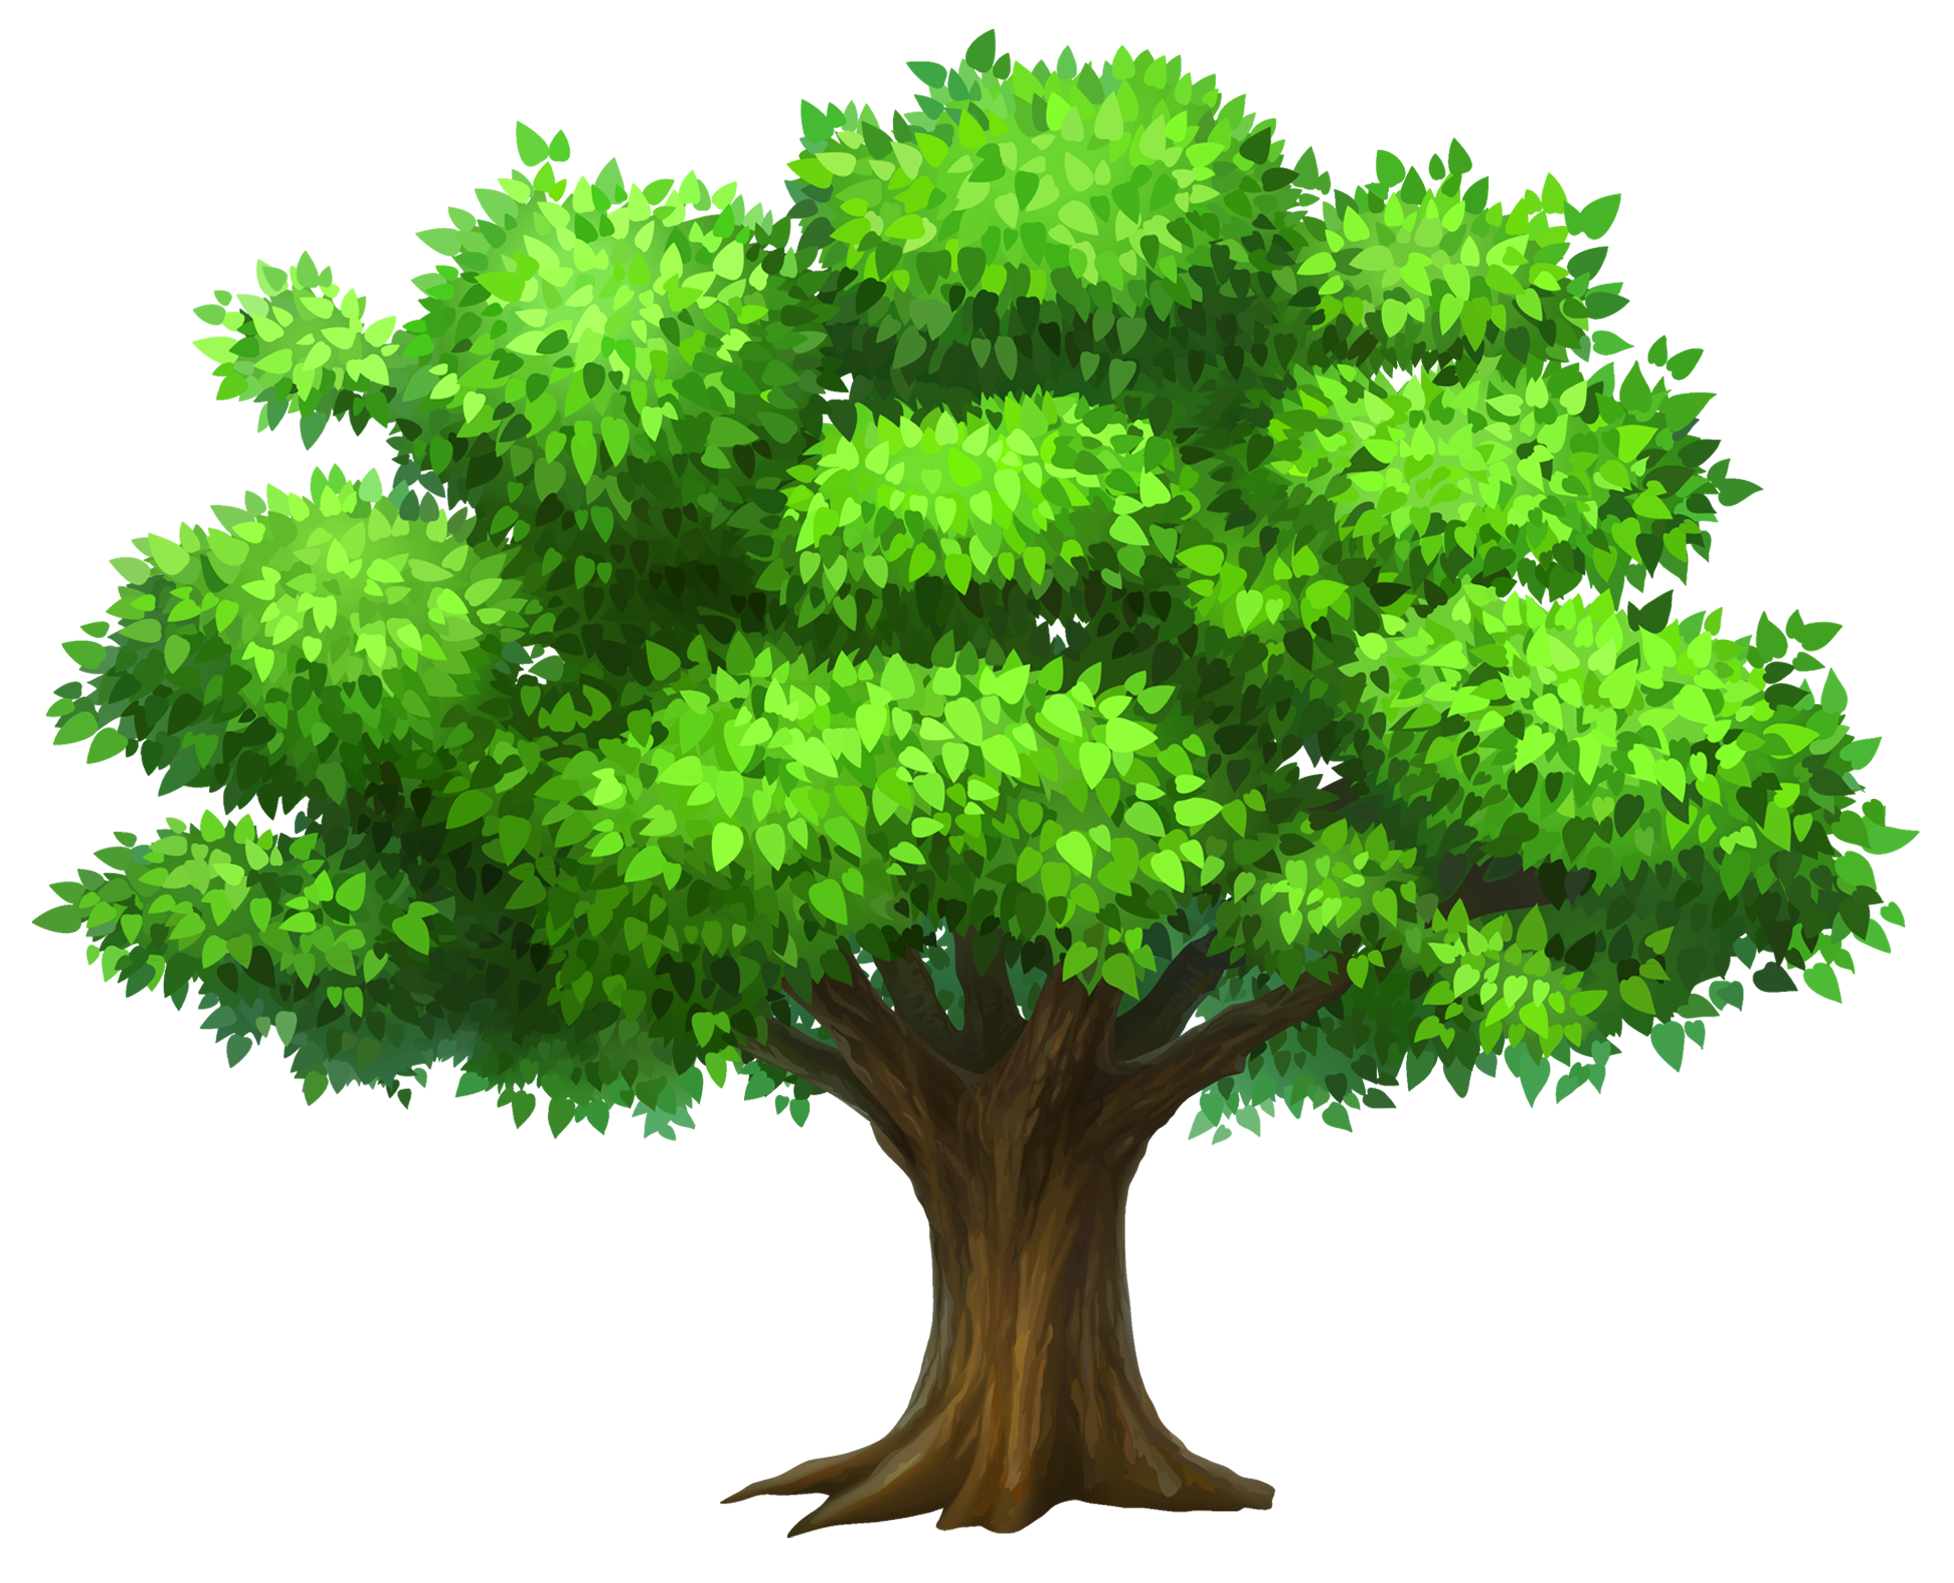 Shade tree clipart png free Strong Tree Clipart & Strong Tree Clip Art Images #14473 ... png free